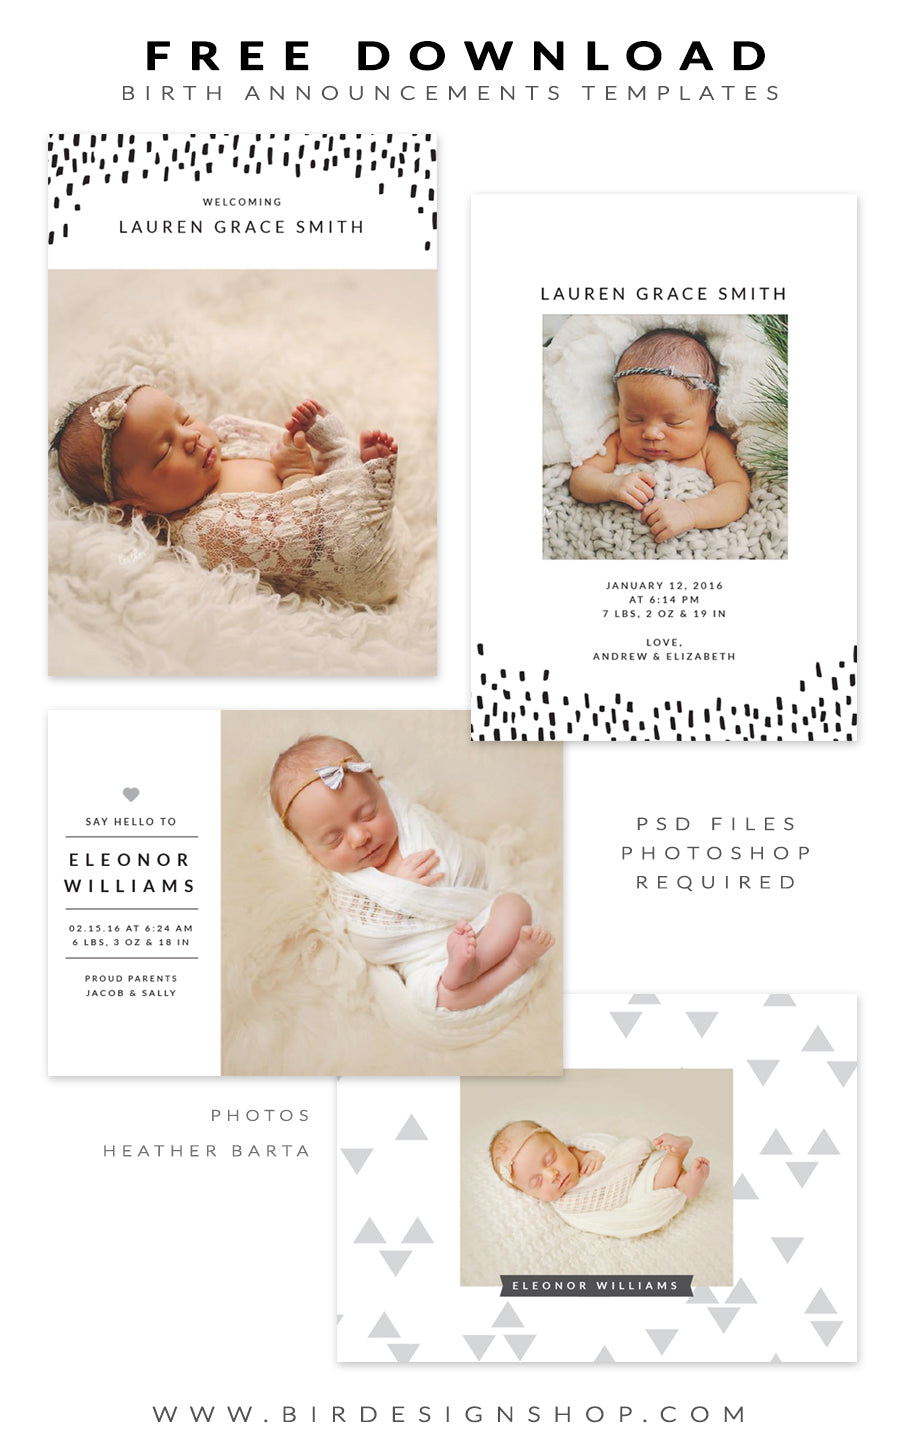 free online birth announcements templates - free birth announcements templates january freebie